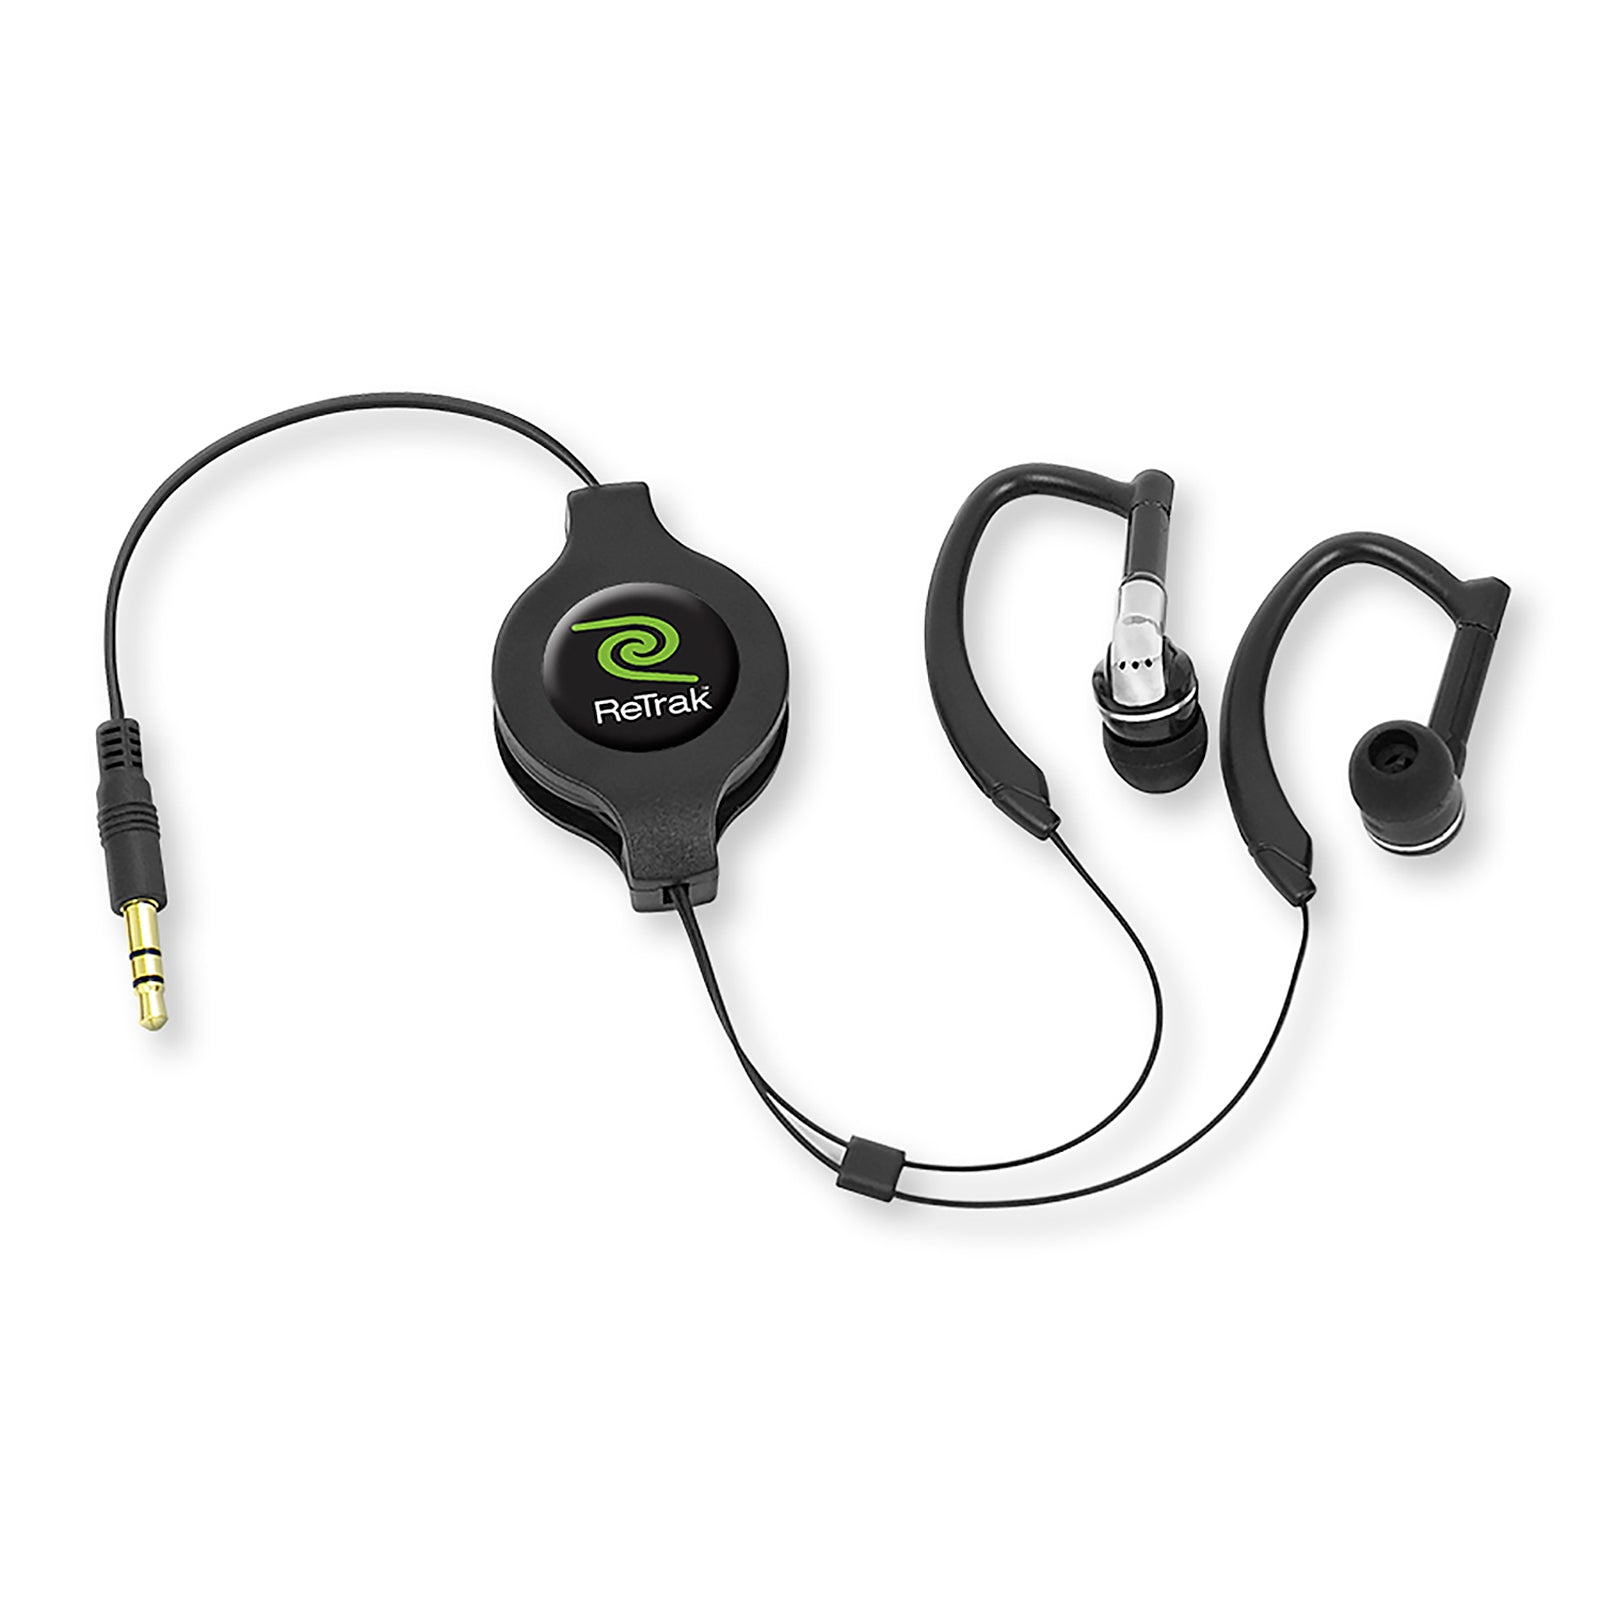 Wrap Around Earbuds | Retractable Cable | Sports Earphones